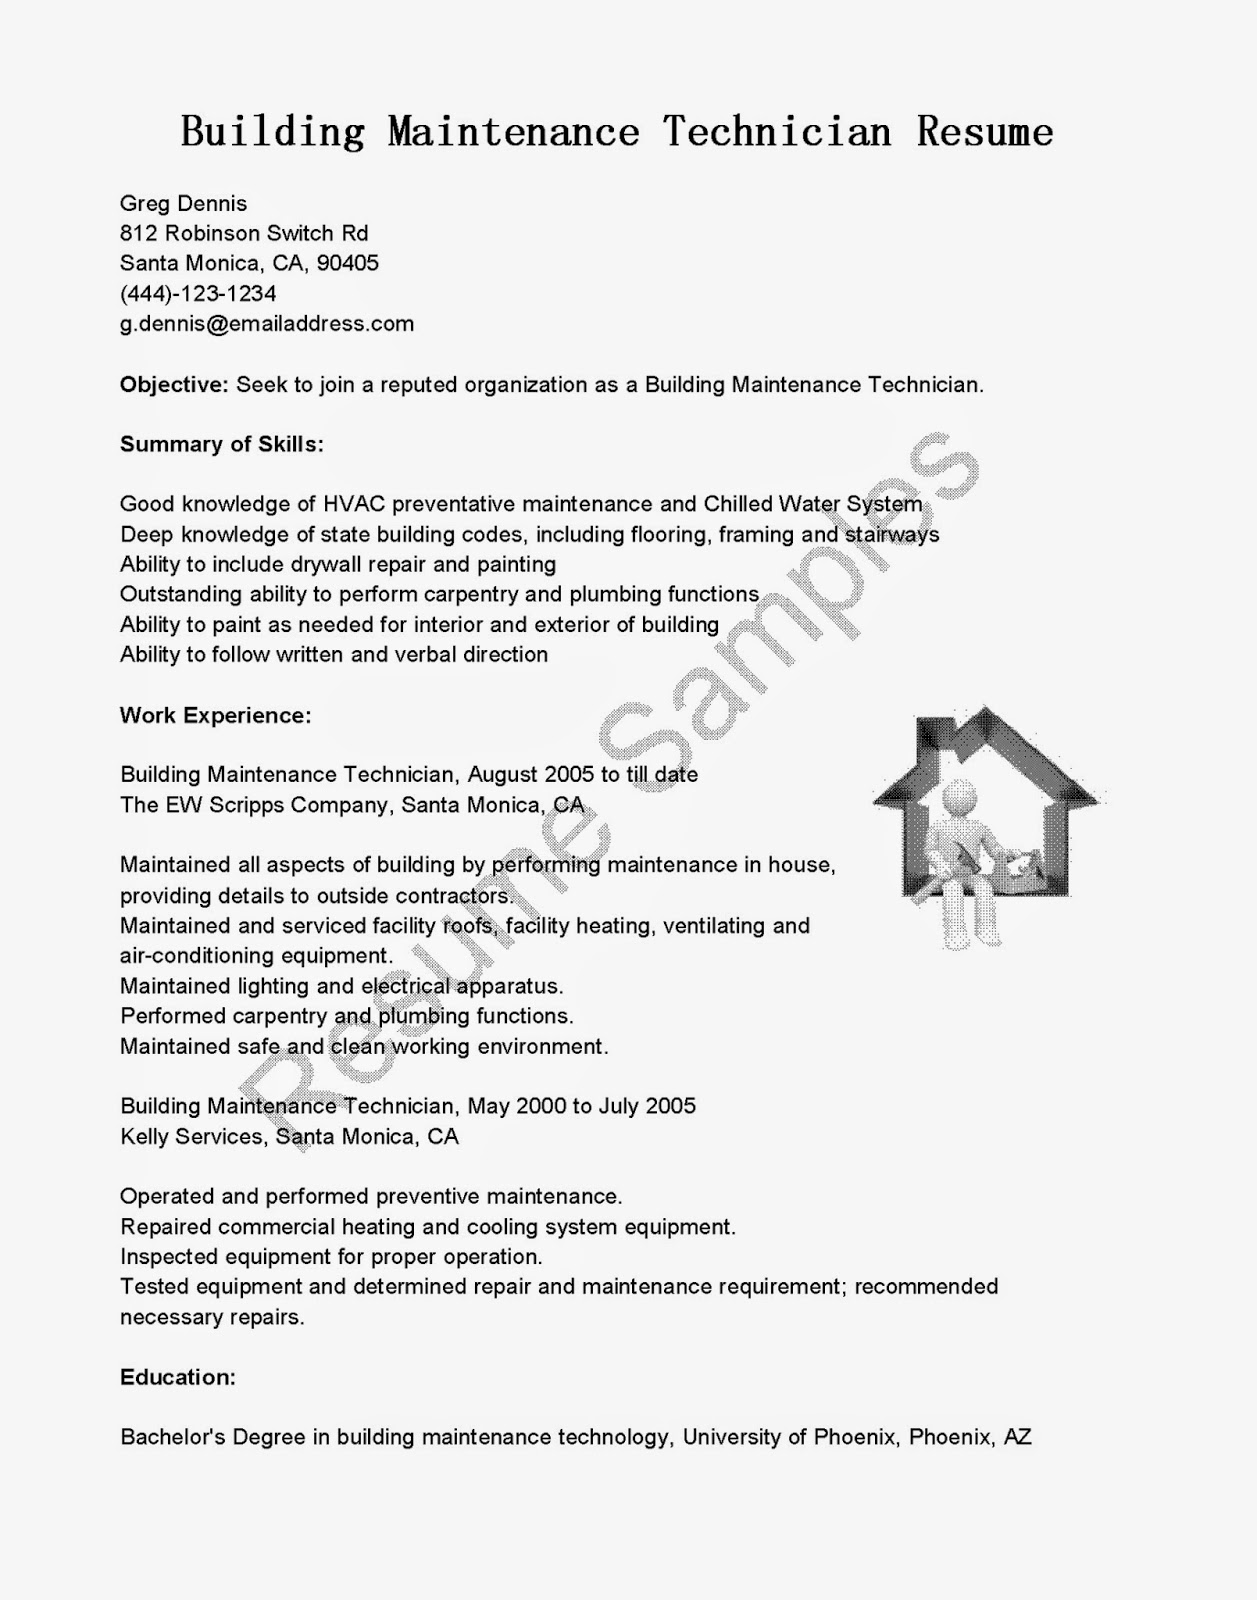 Maintenance Tech Resume Sample Resume Samples Building Maintenance Technician Resume Sample